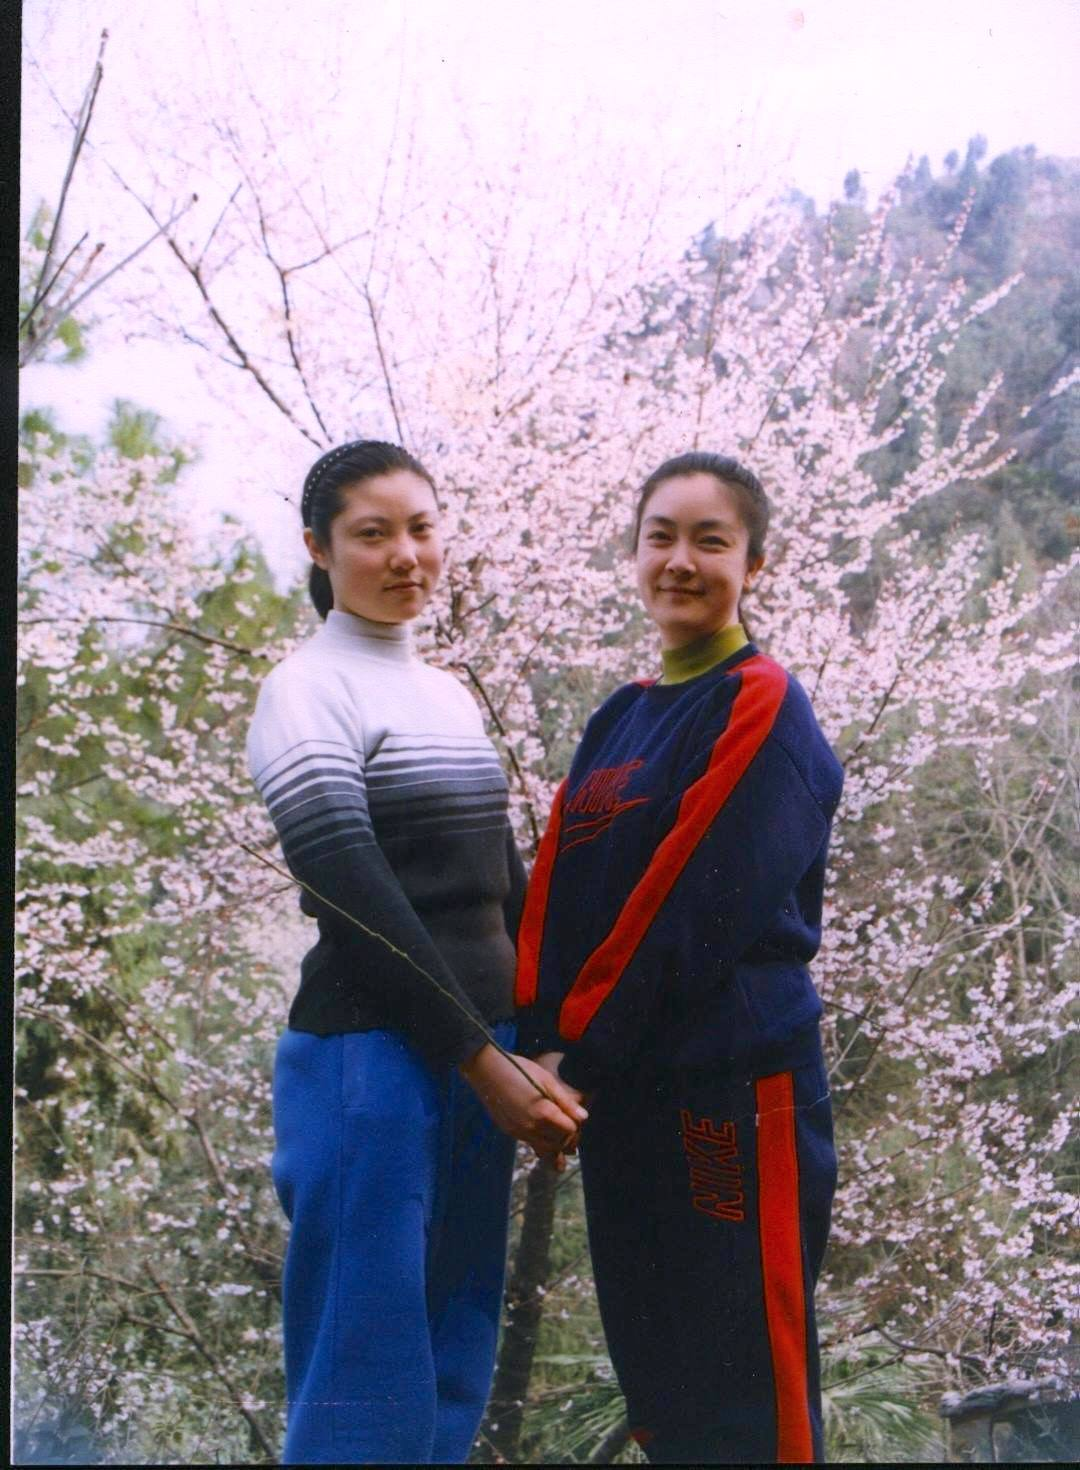 My sister and I in Mianyang in 1998, one year before the persecution of Falun Gong started. 我與大妹妹1998年,即鎮壓法輪功之前一年,攝於四川綿陽。